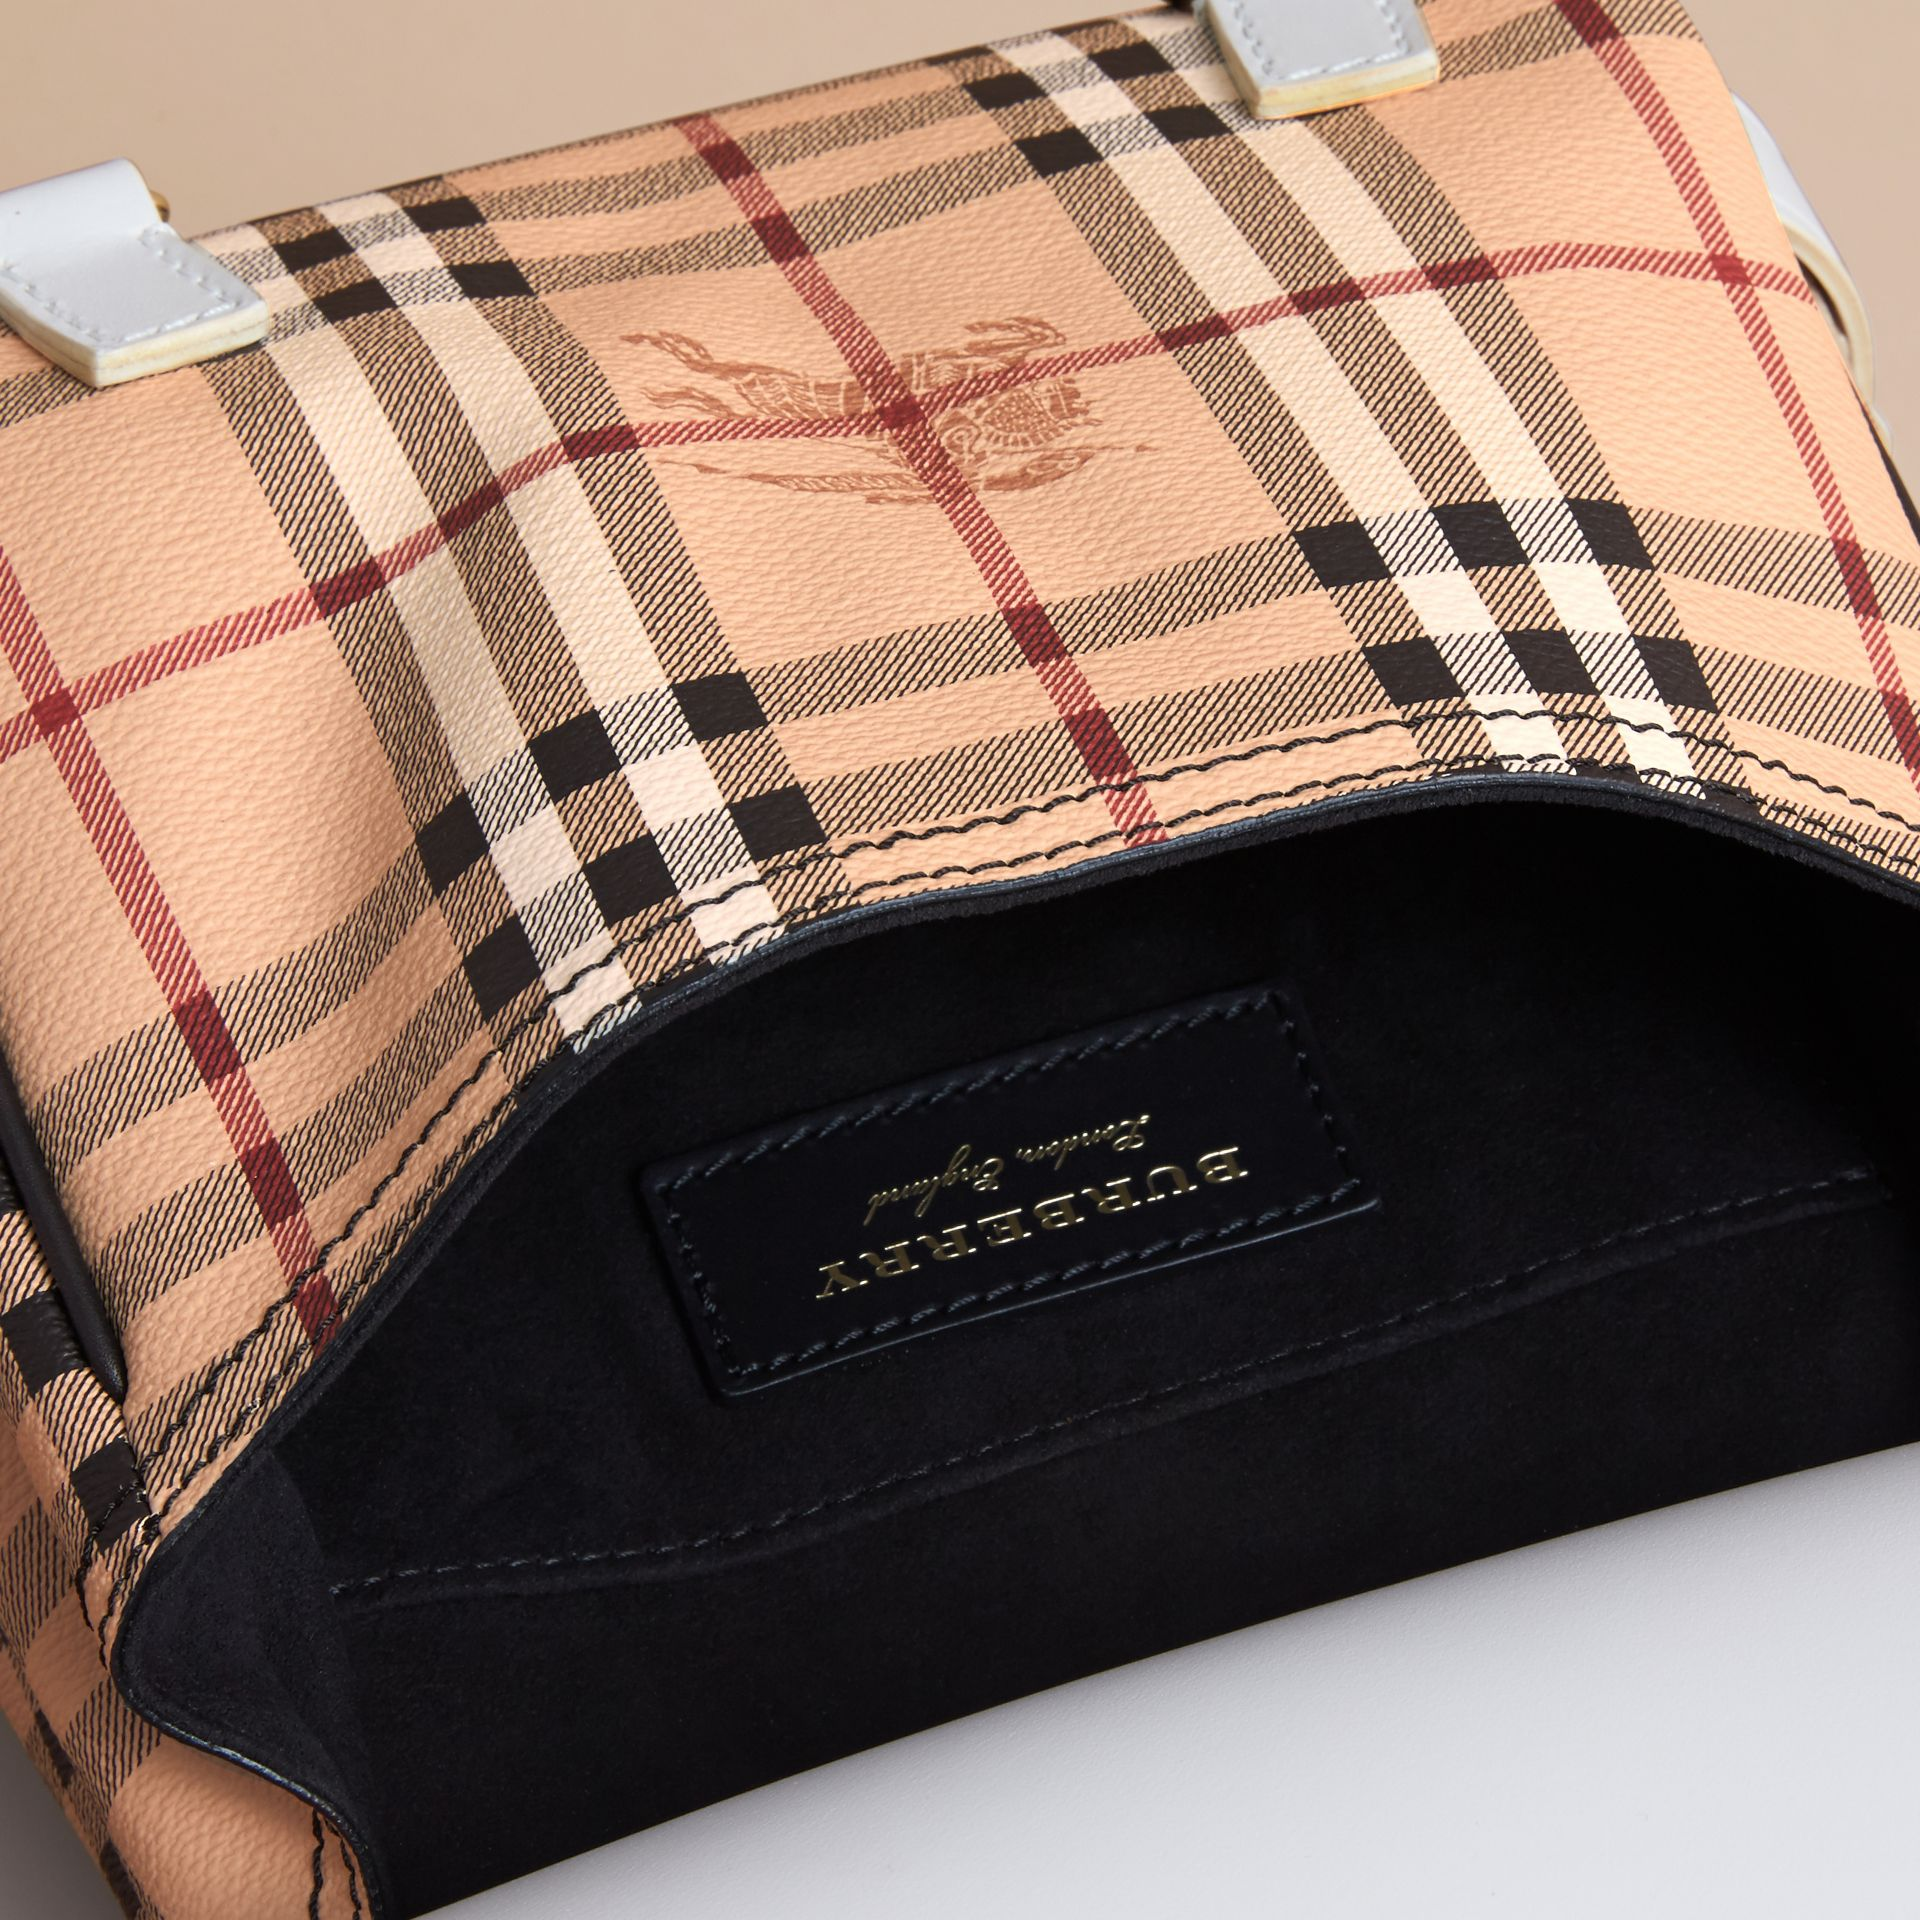 Sac The Bridle en cuir et tissu Haymarket check (Naturel) - Femme | Burberry - photo de la galerie 5